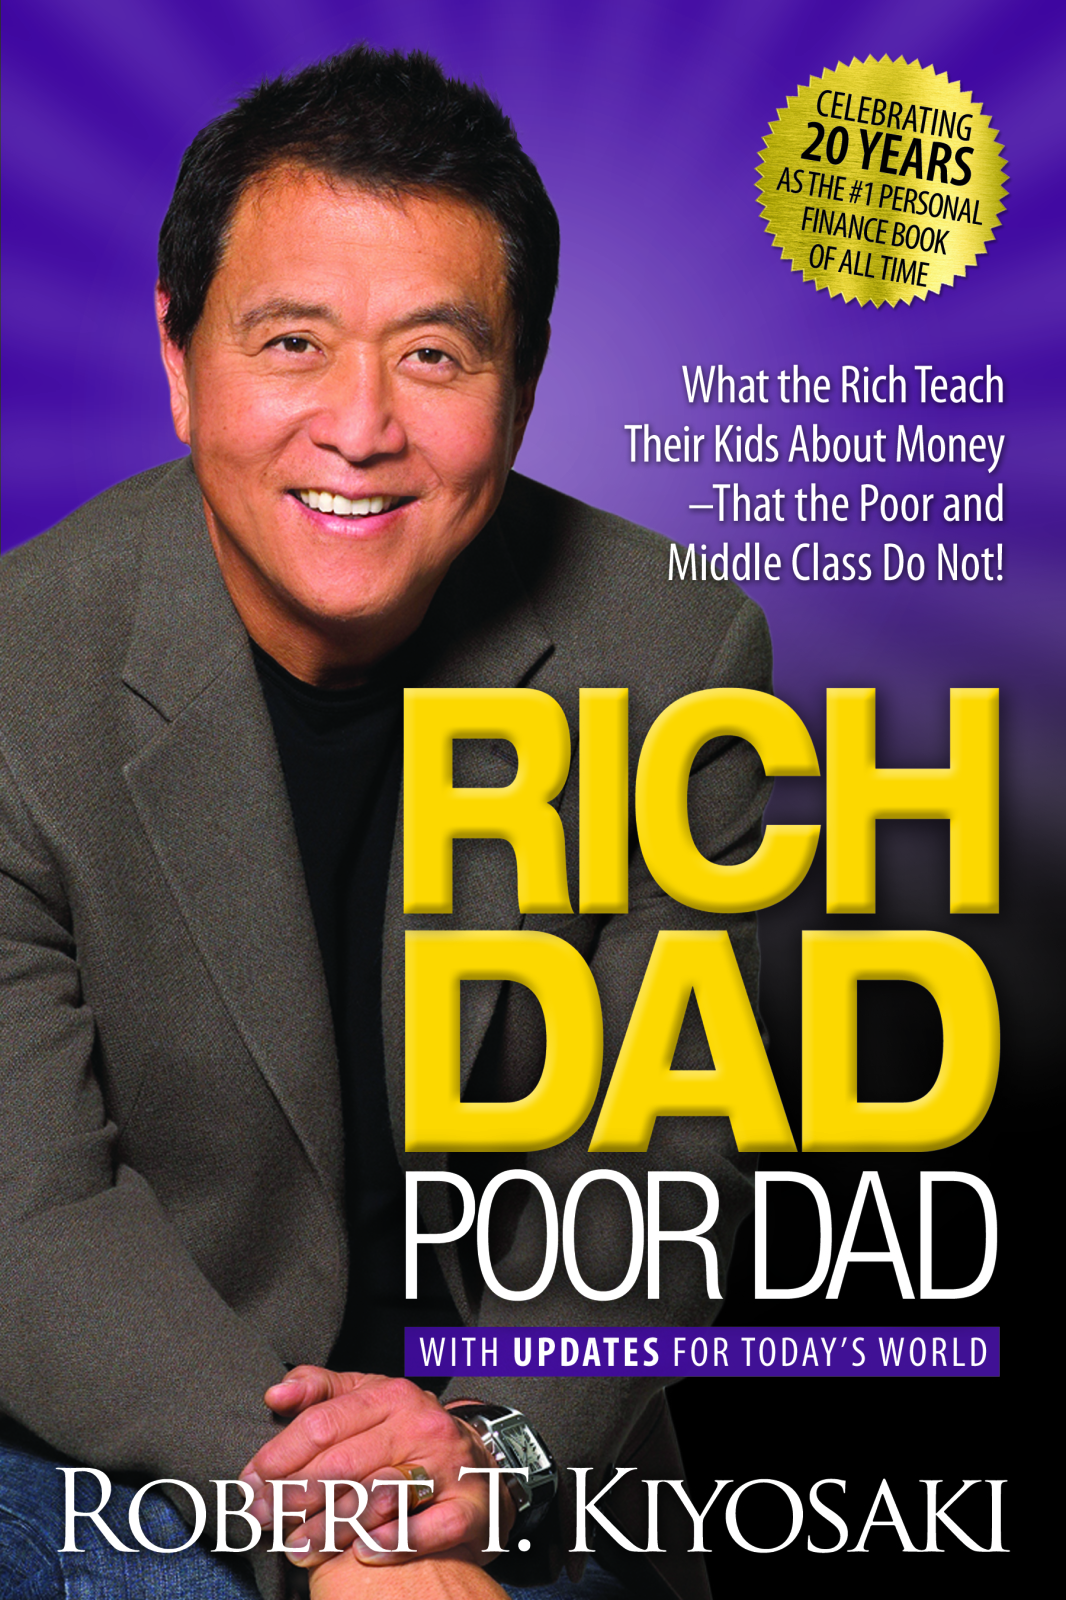 Download Ebook Rich Dad Poor Dad by Robert T. Kiyosaki Pdf